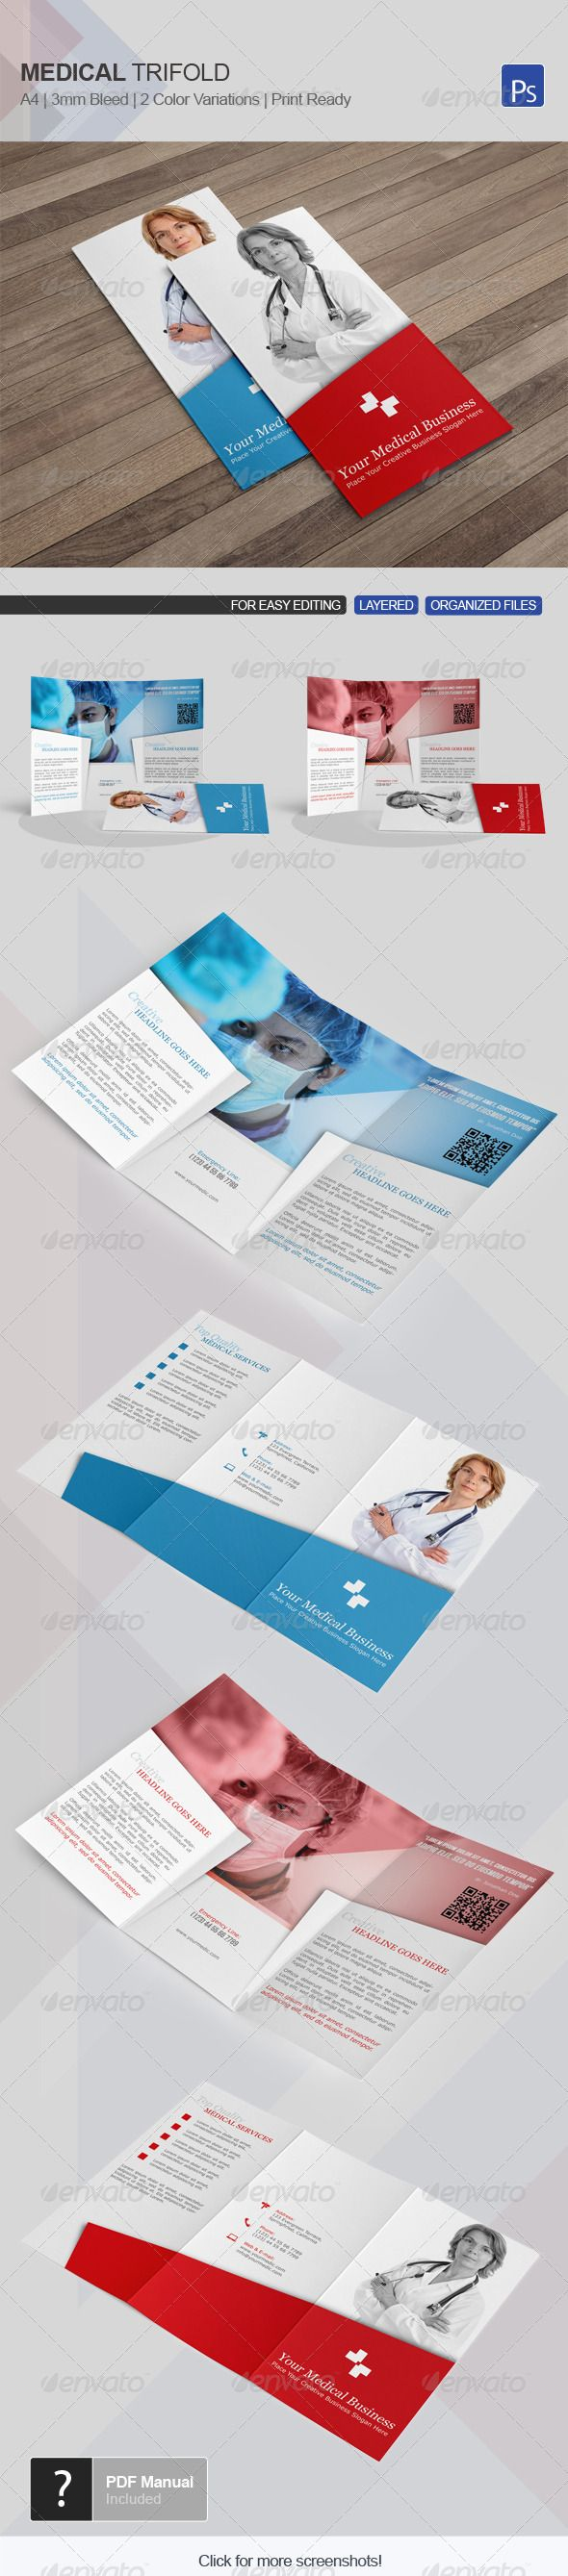 Medical Trifold Template 11  #GraphicRiver         Medical Trifold